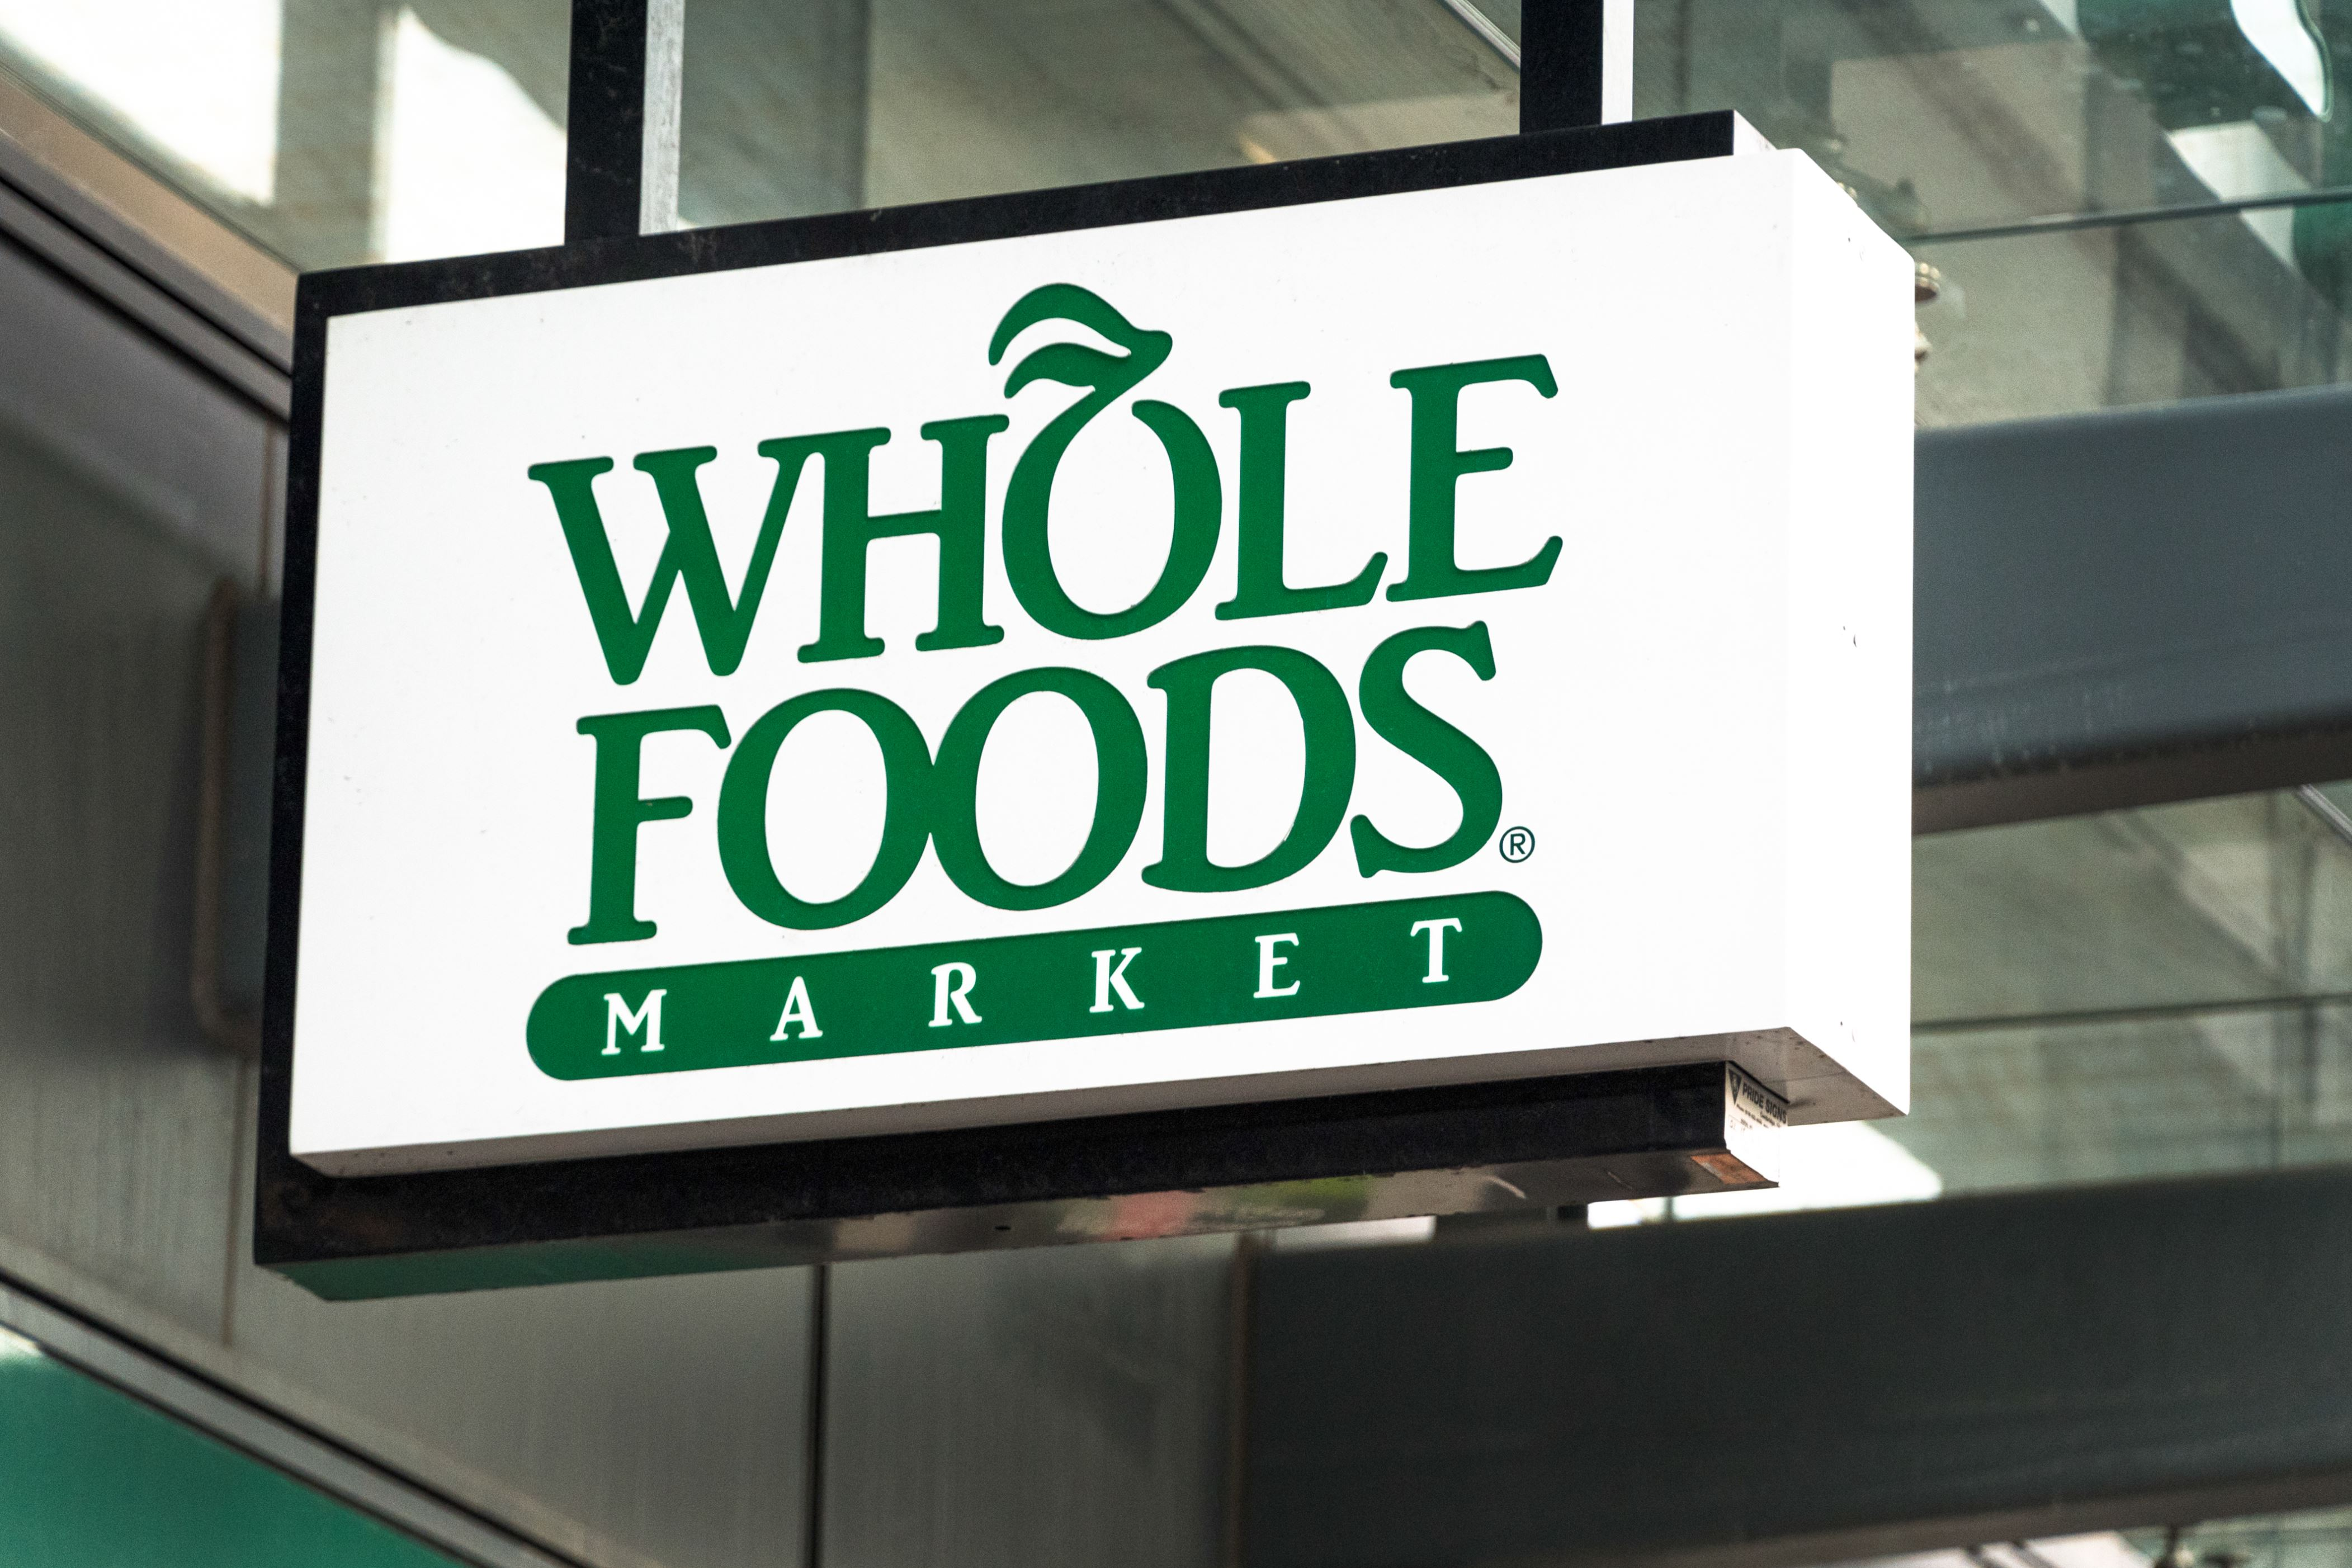 Whole Foods Recalls Cheese Product Over Possible Listeria Contamination